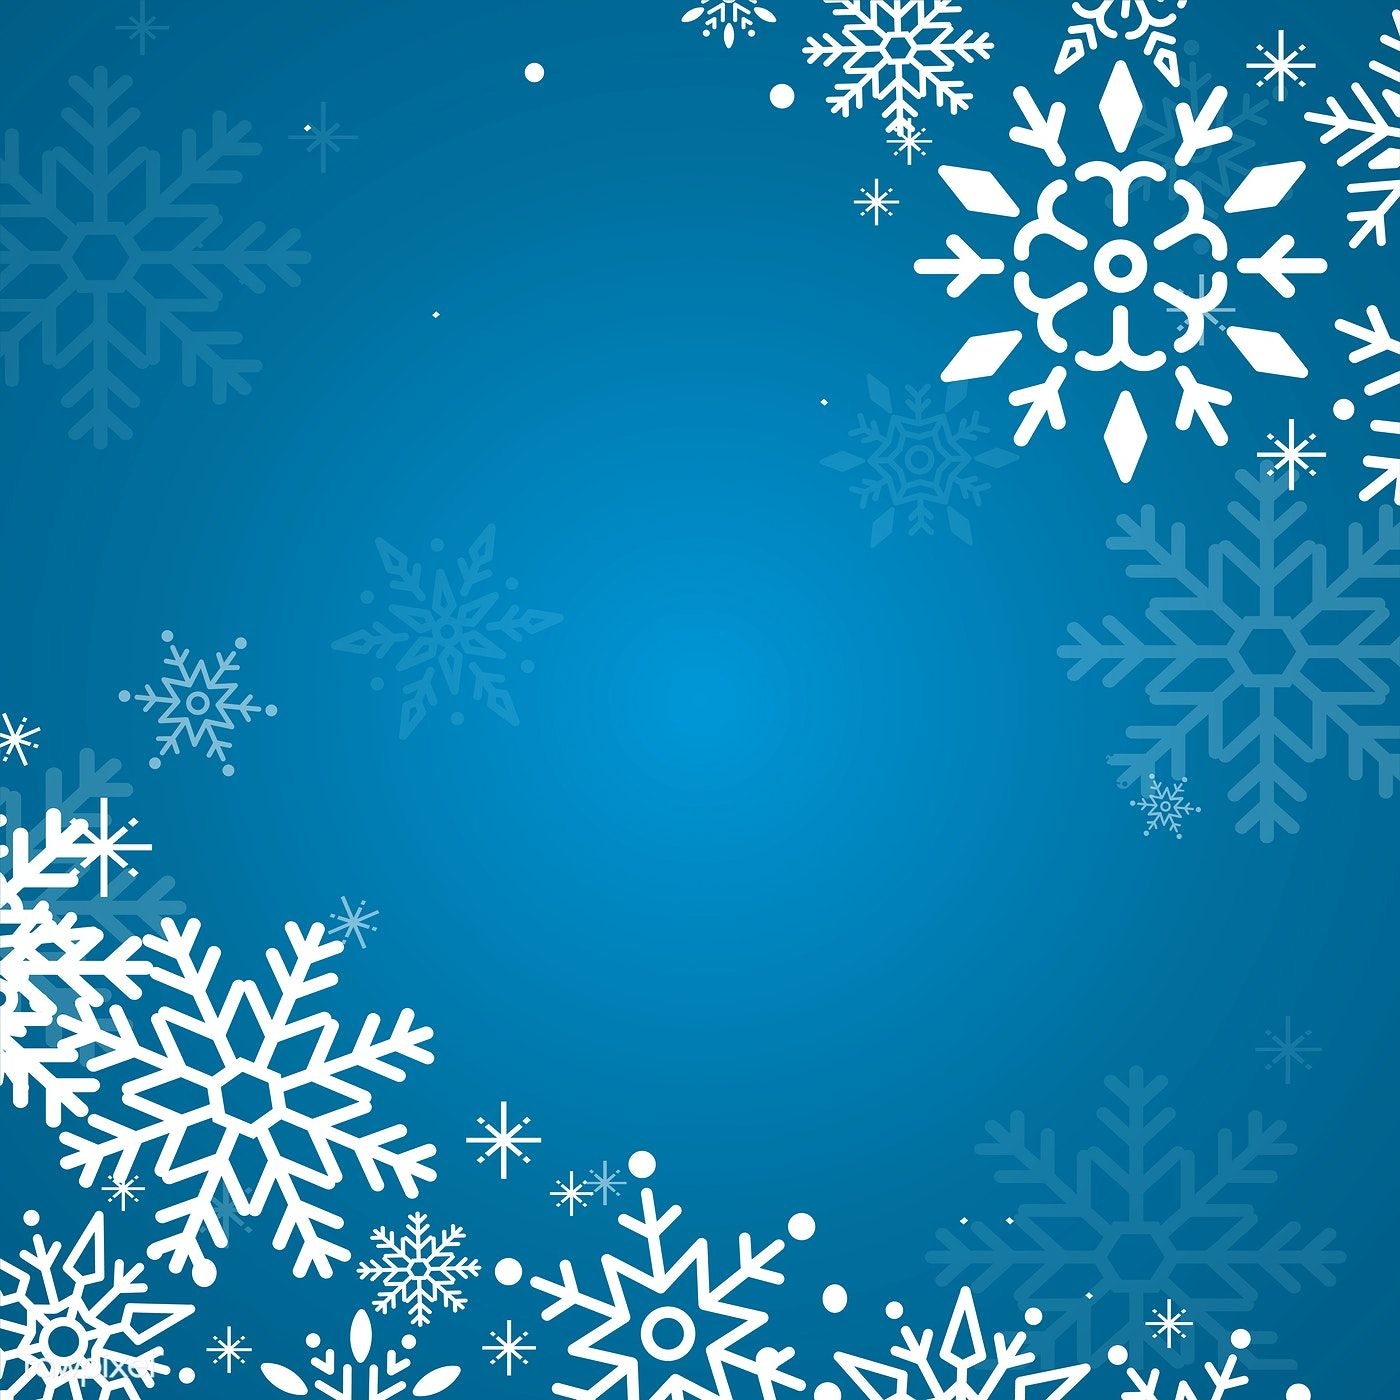 Blue Christmas winter holiday background with snowflake